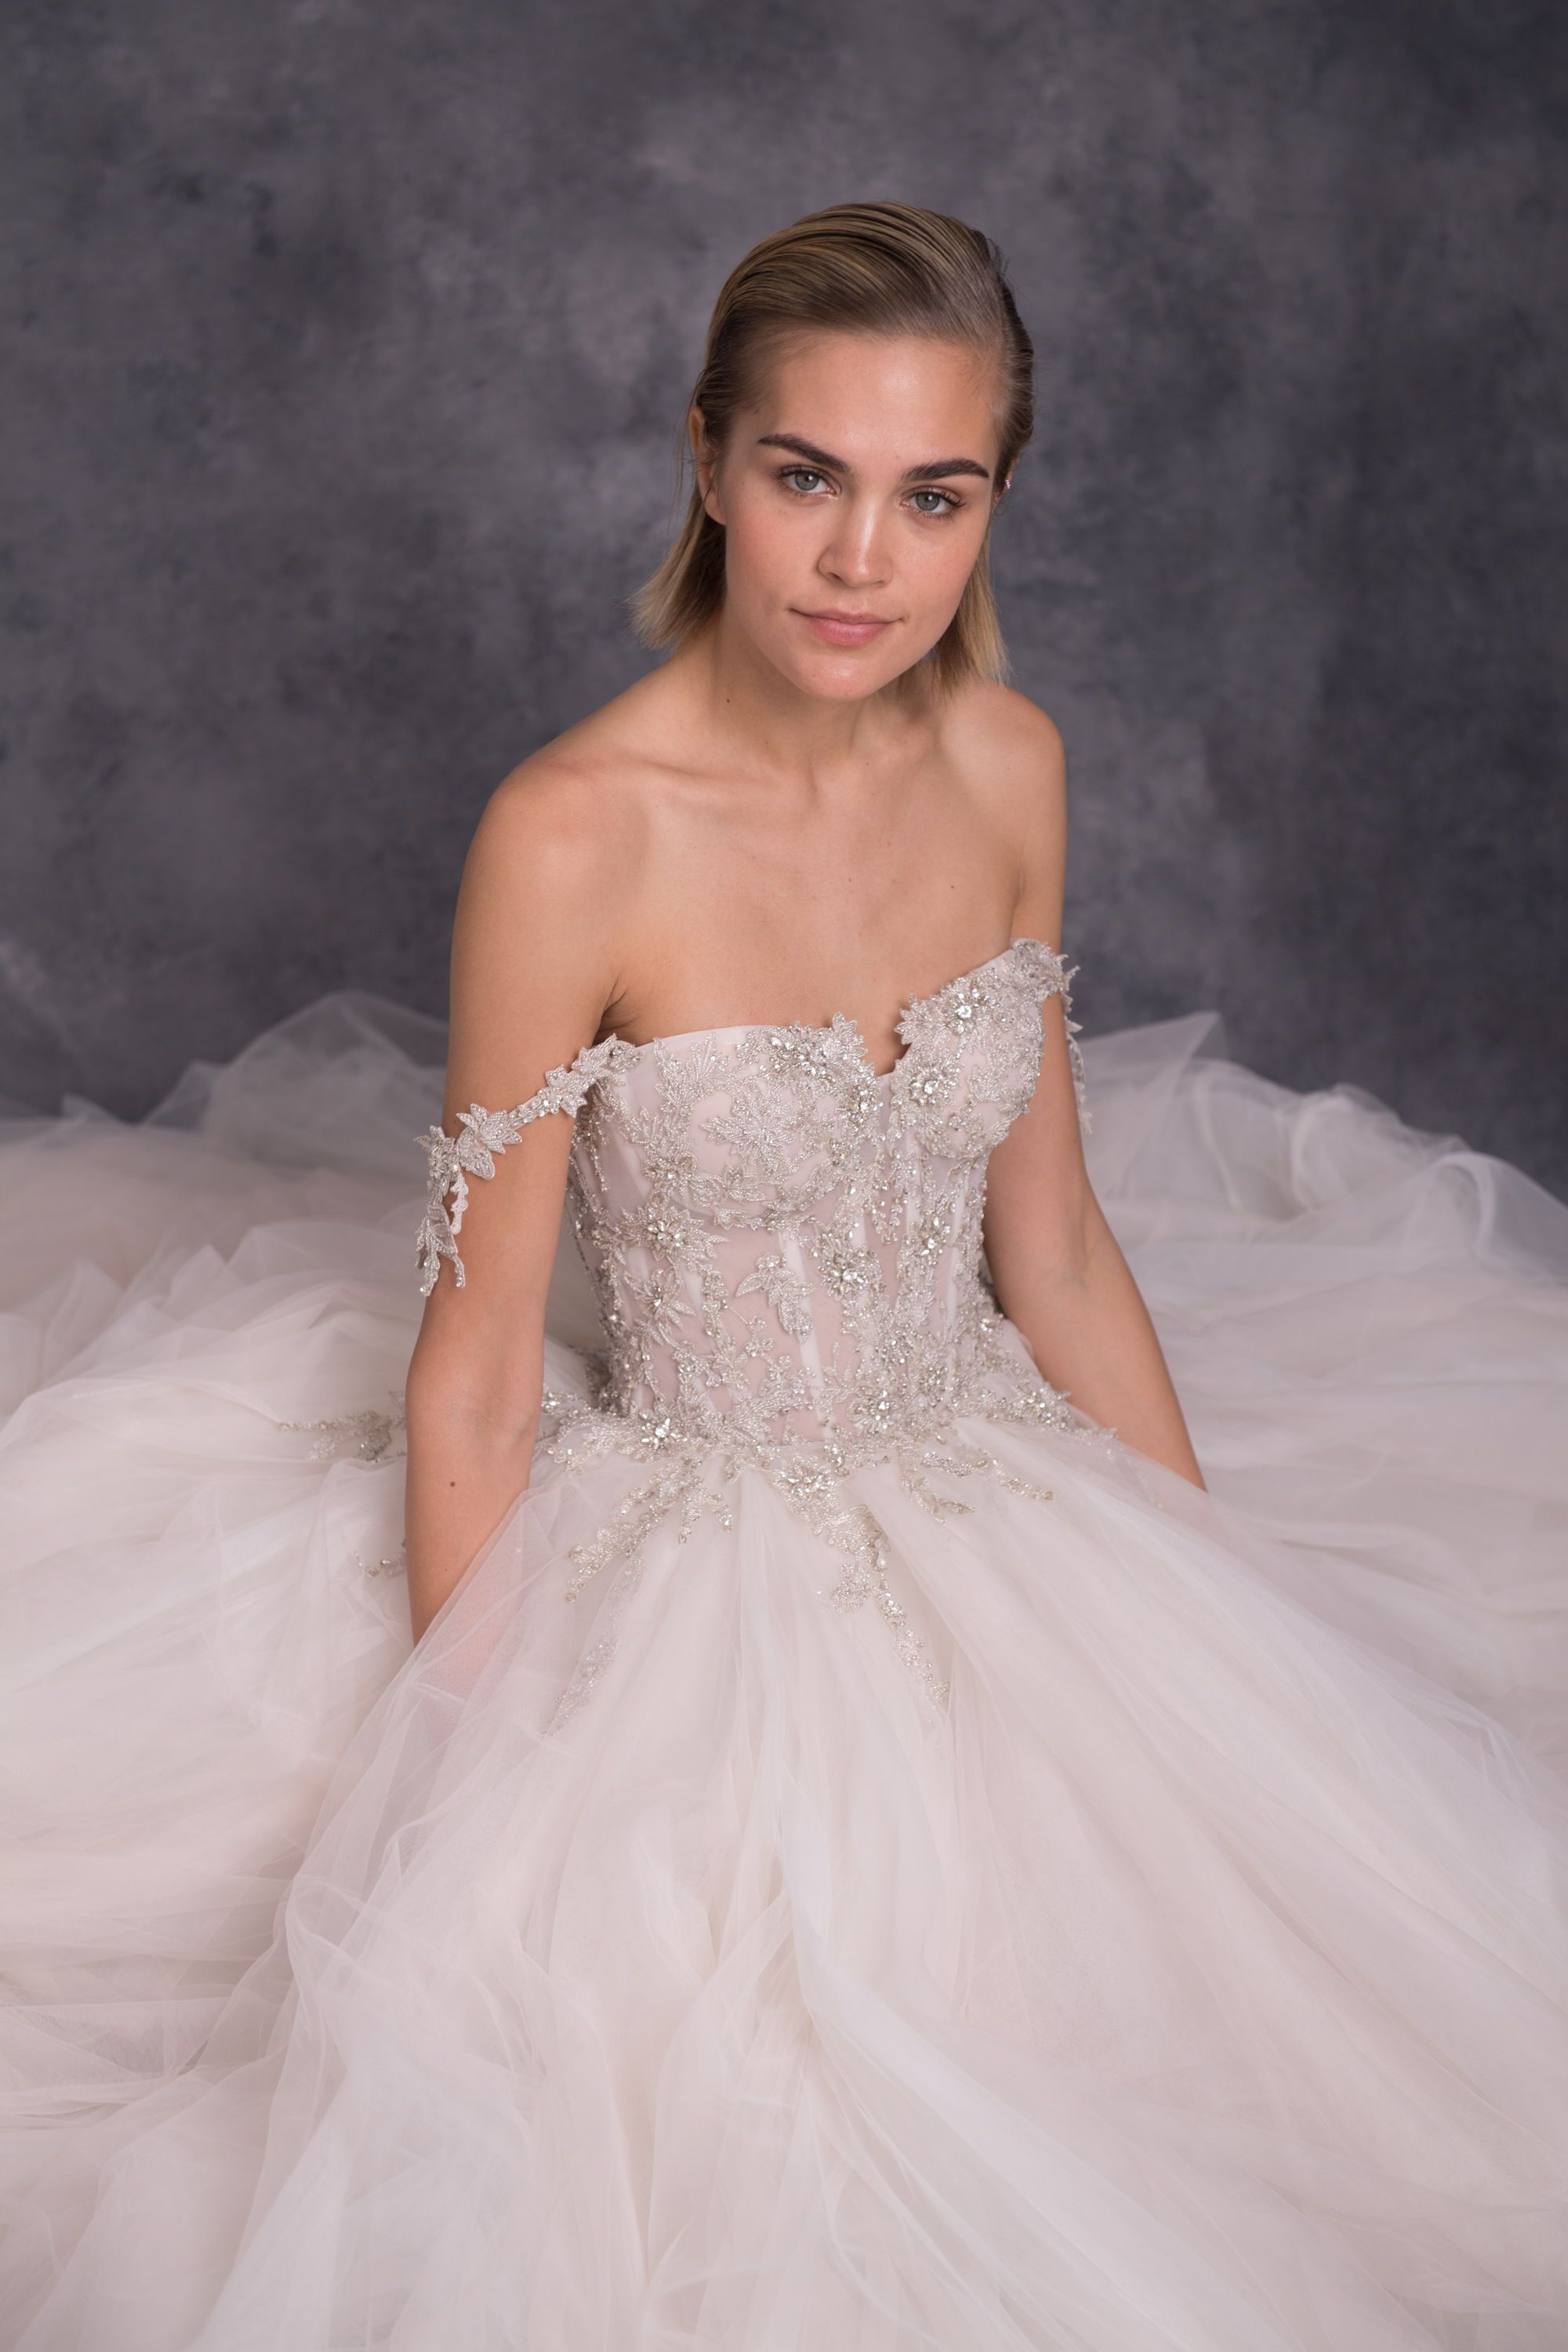 The mia is a dramatic princess ballgown with an elaborate beaded